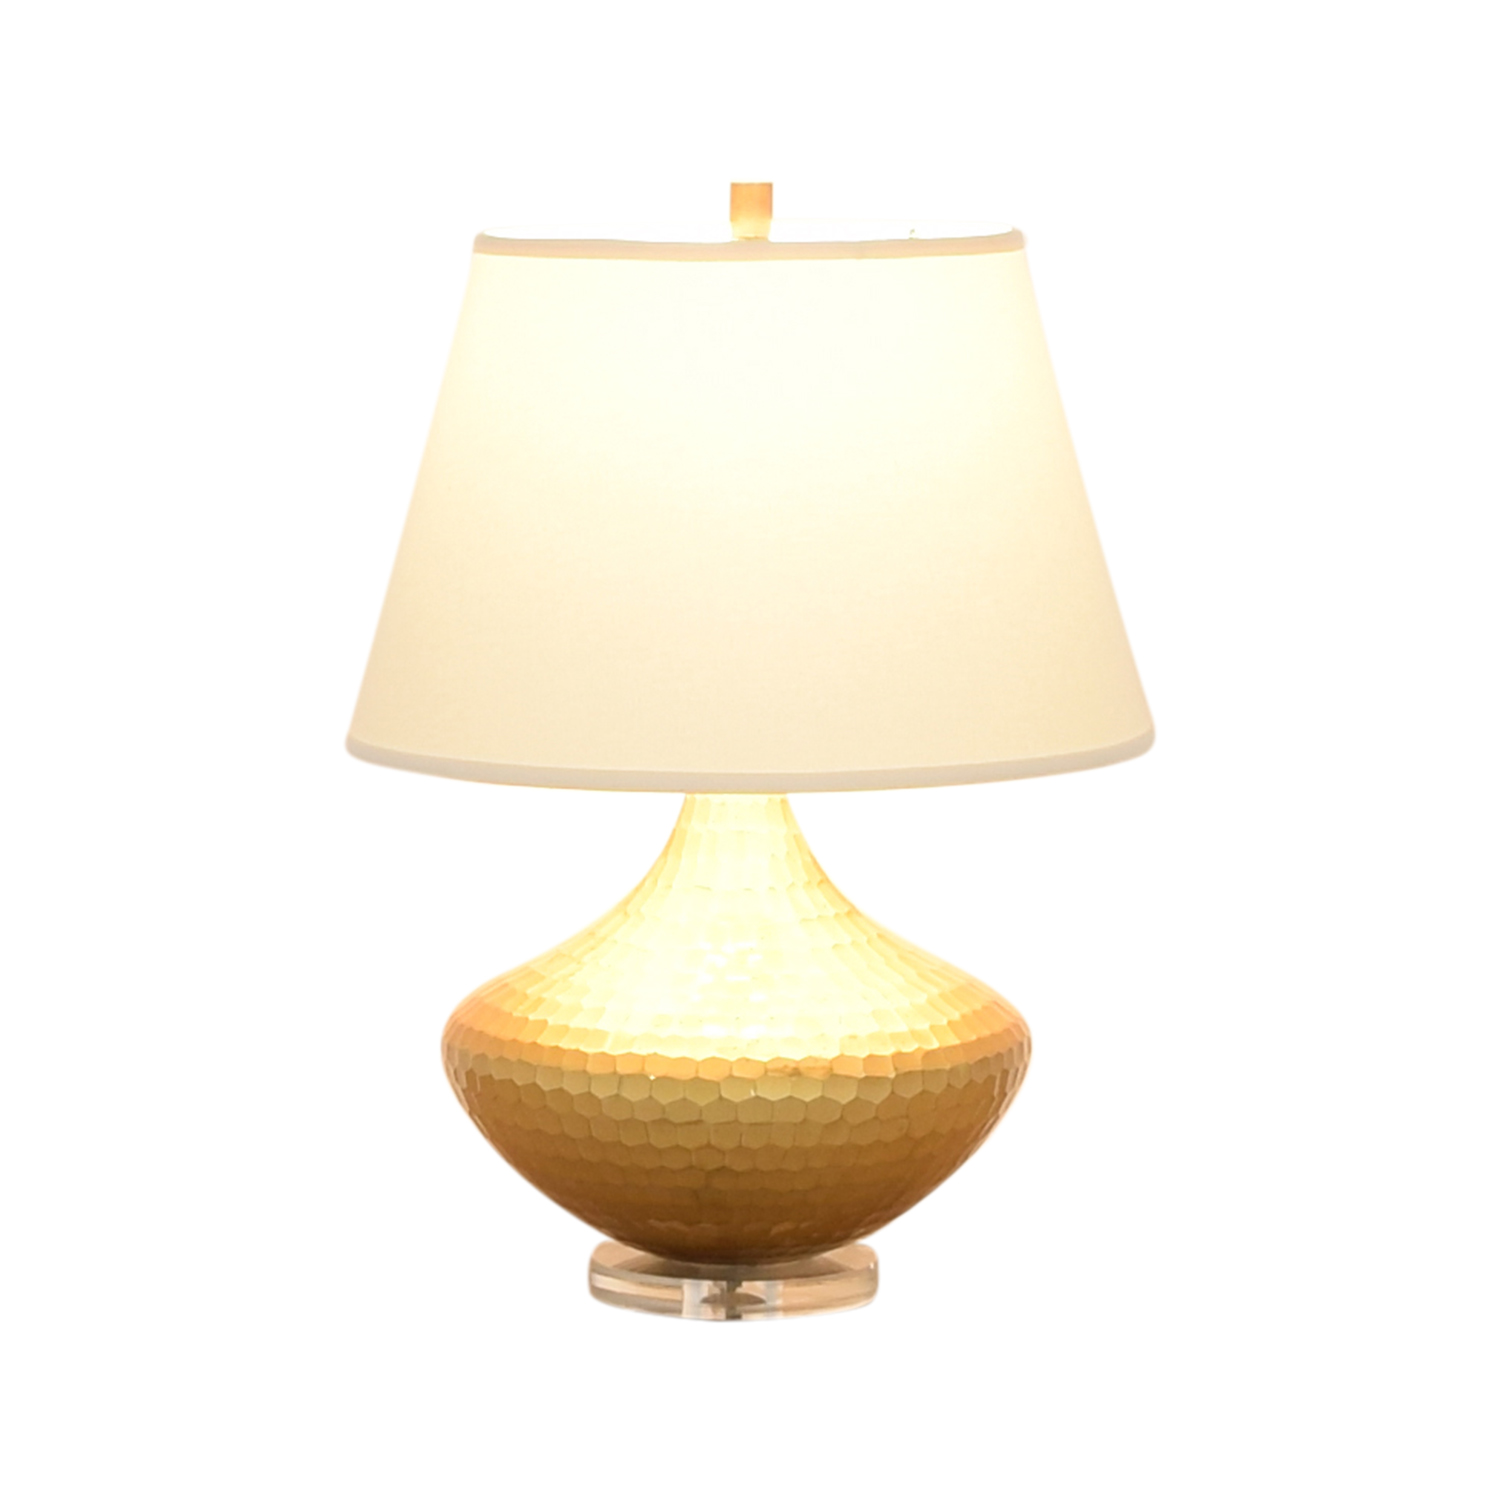 Ethan Allen Ethan Allen Hammered Lamp Decor